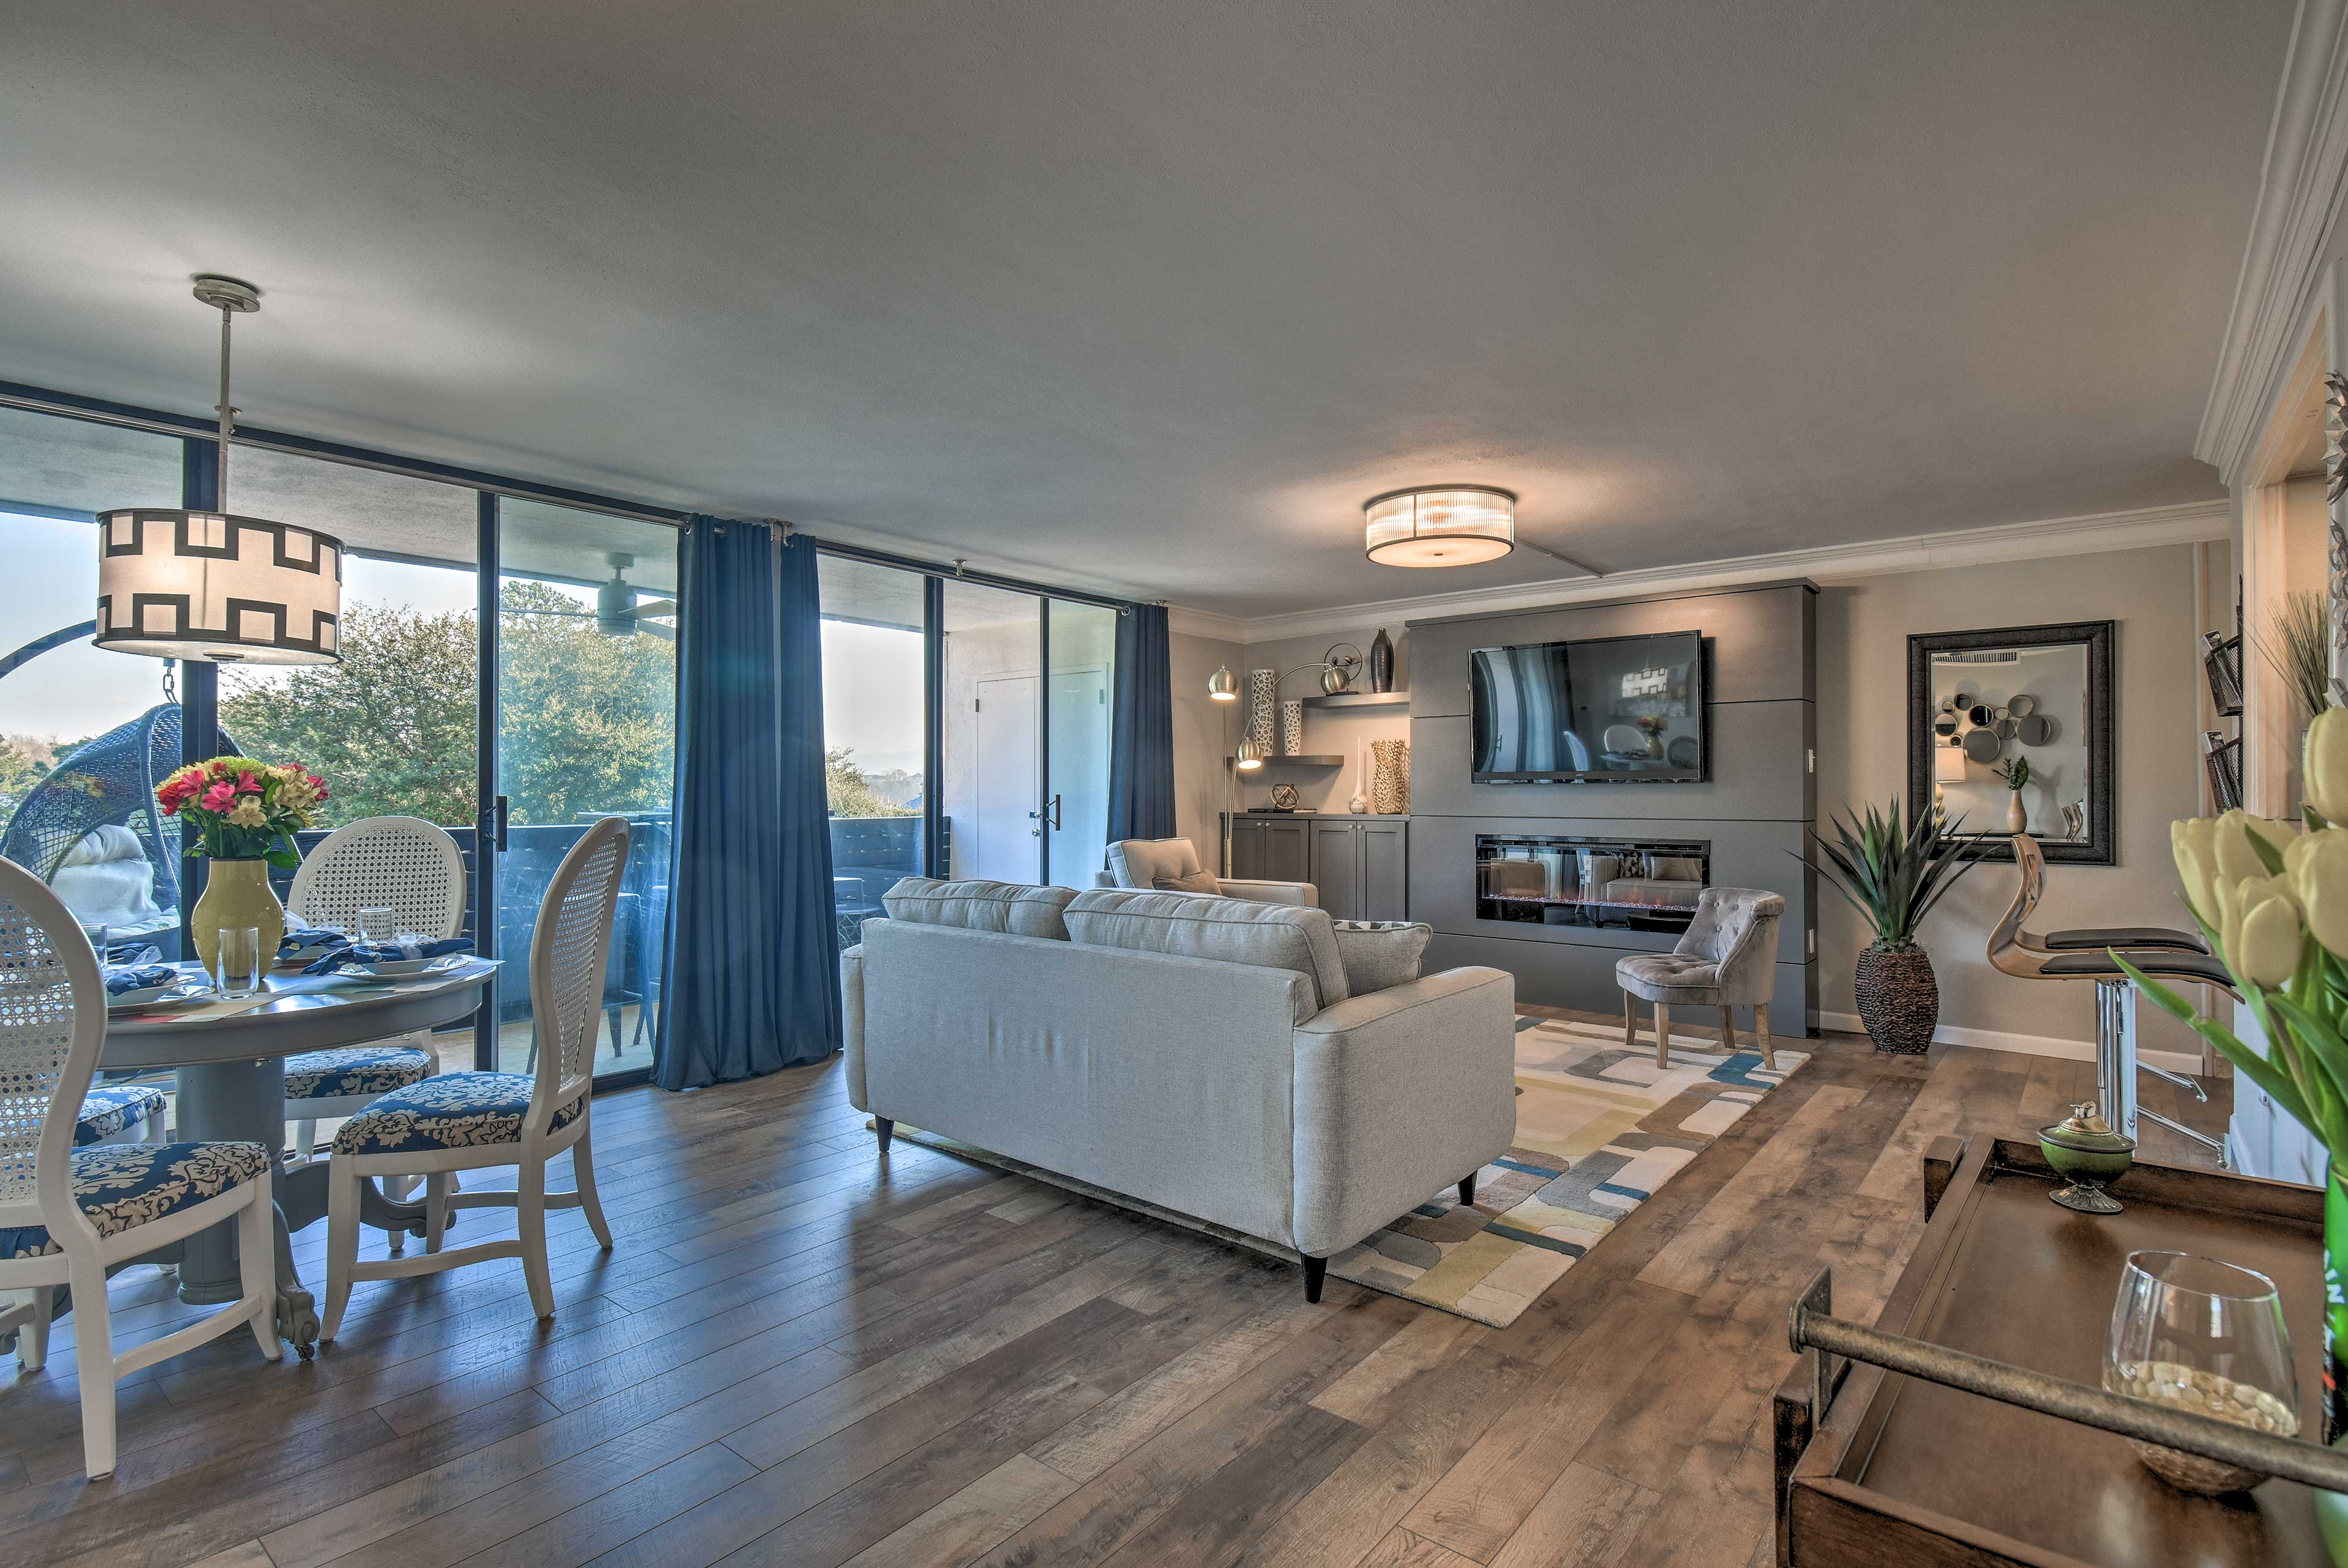 Make this bright vacation rental condo your Hot Springs home-away-from-home.